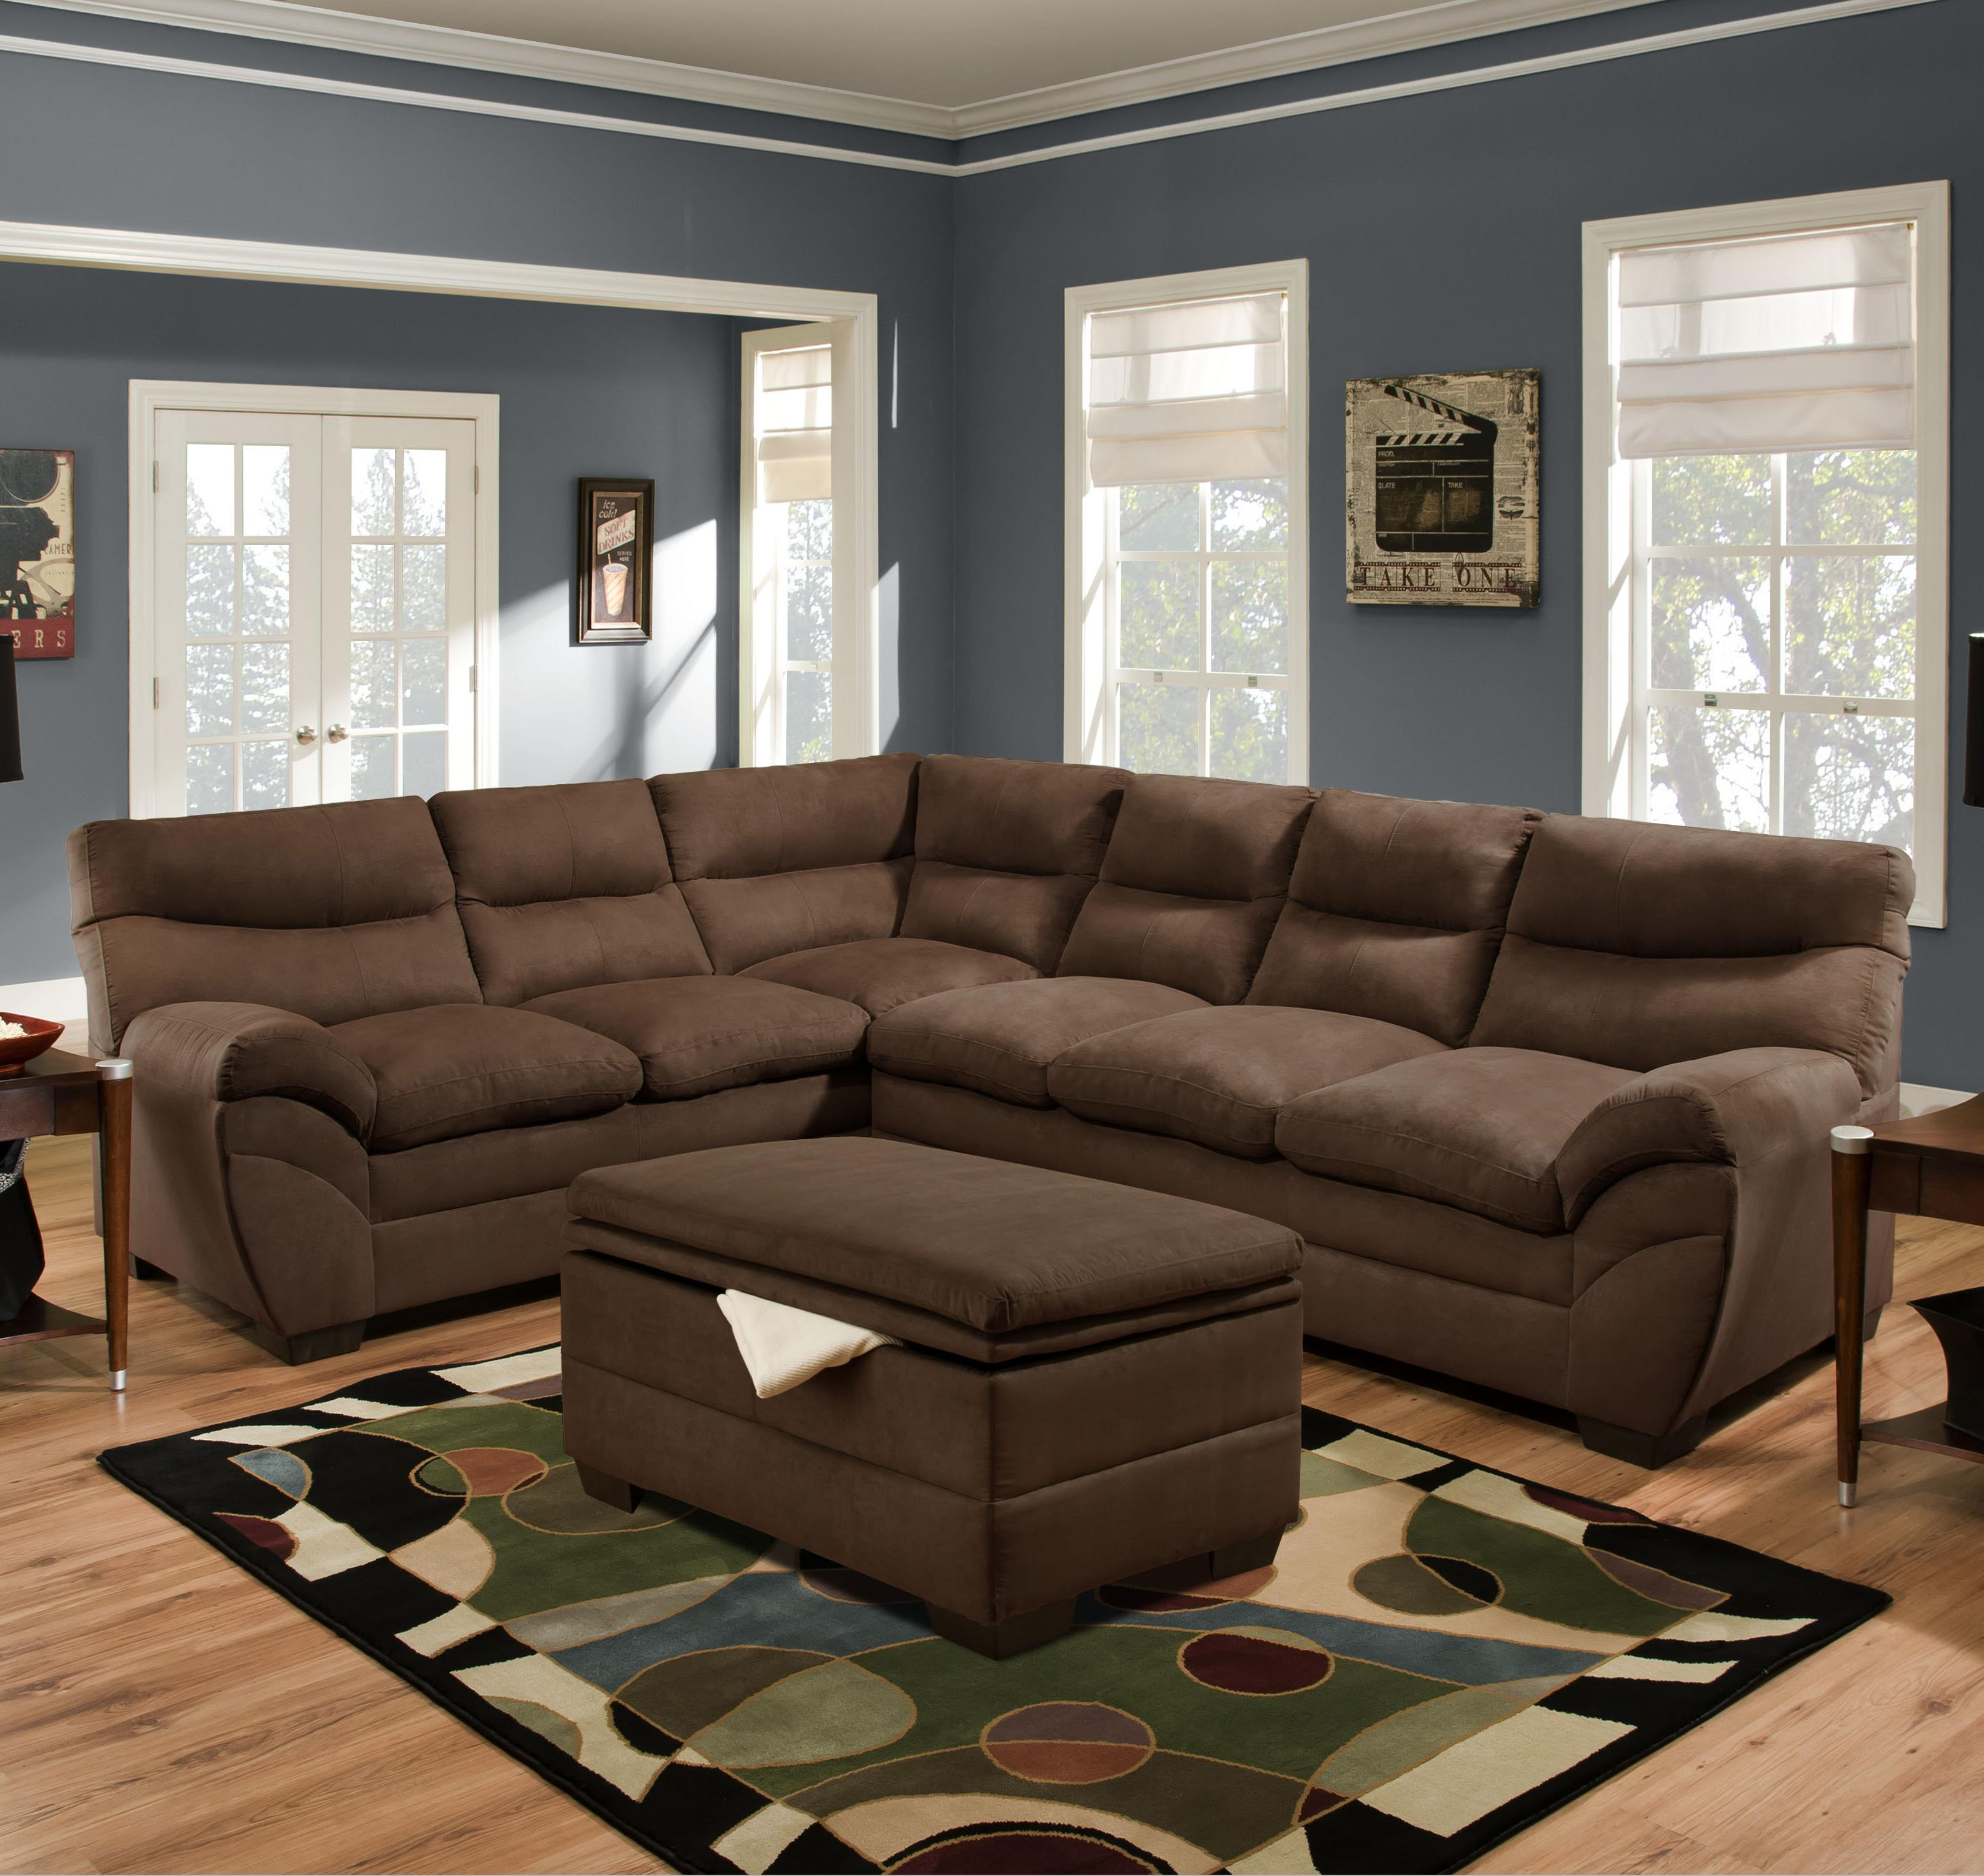 simmons blackjack cocoa reclining sofa and loveseat rattan dining set uk 50250 br united furniture